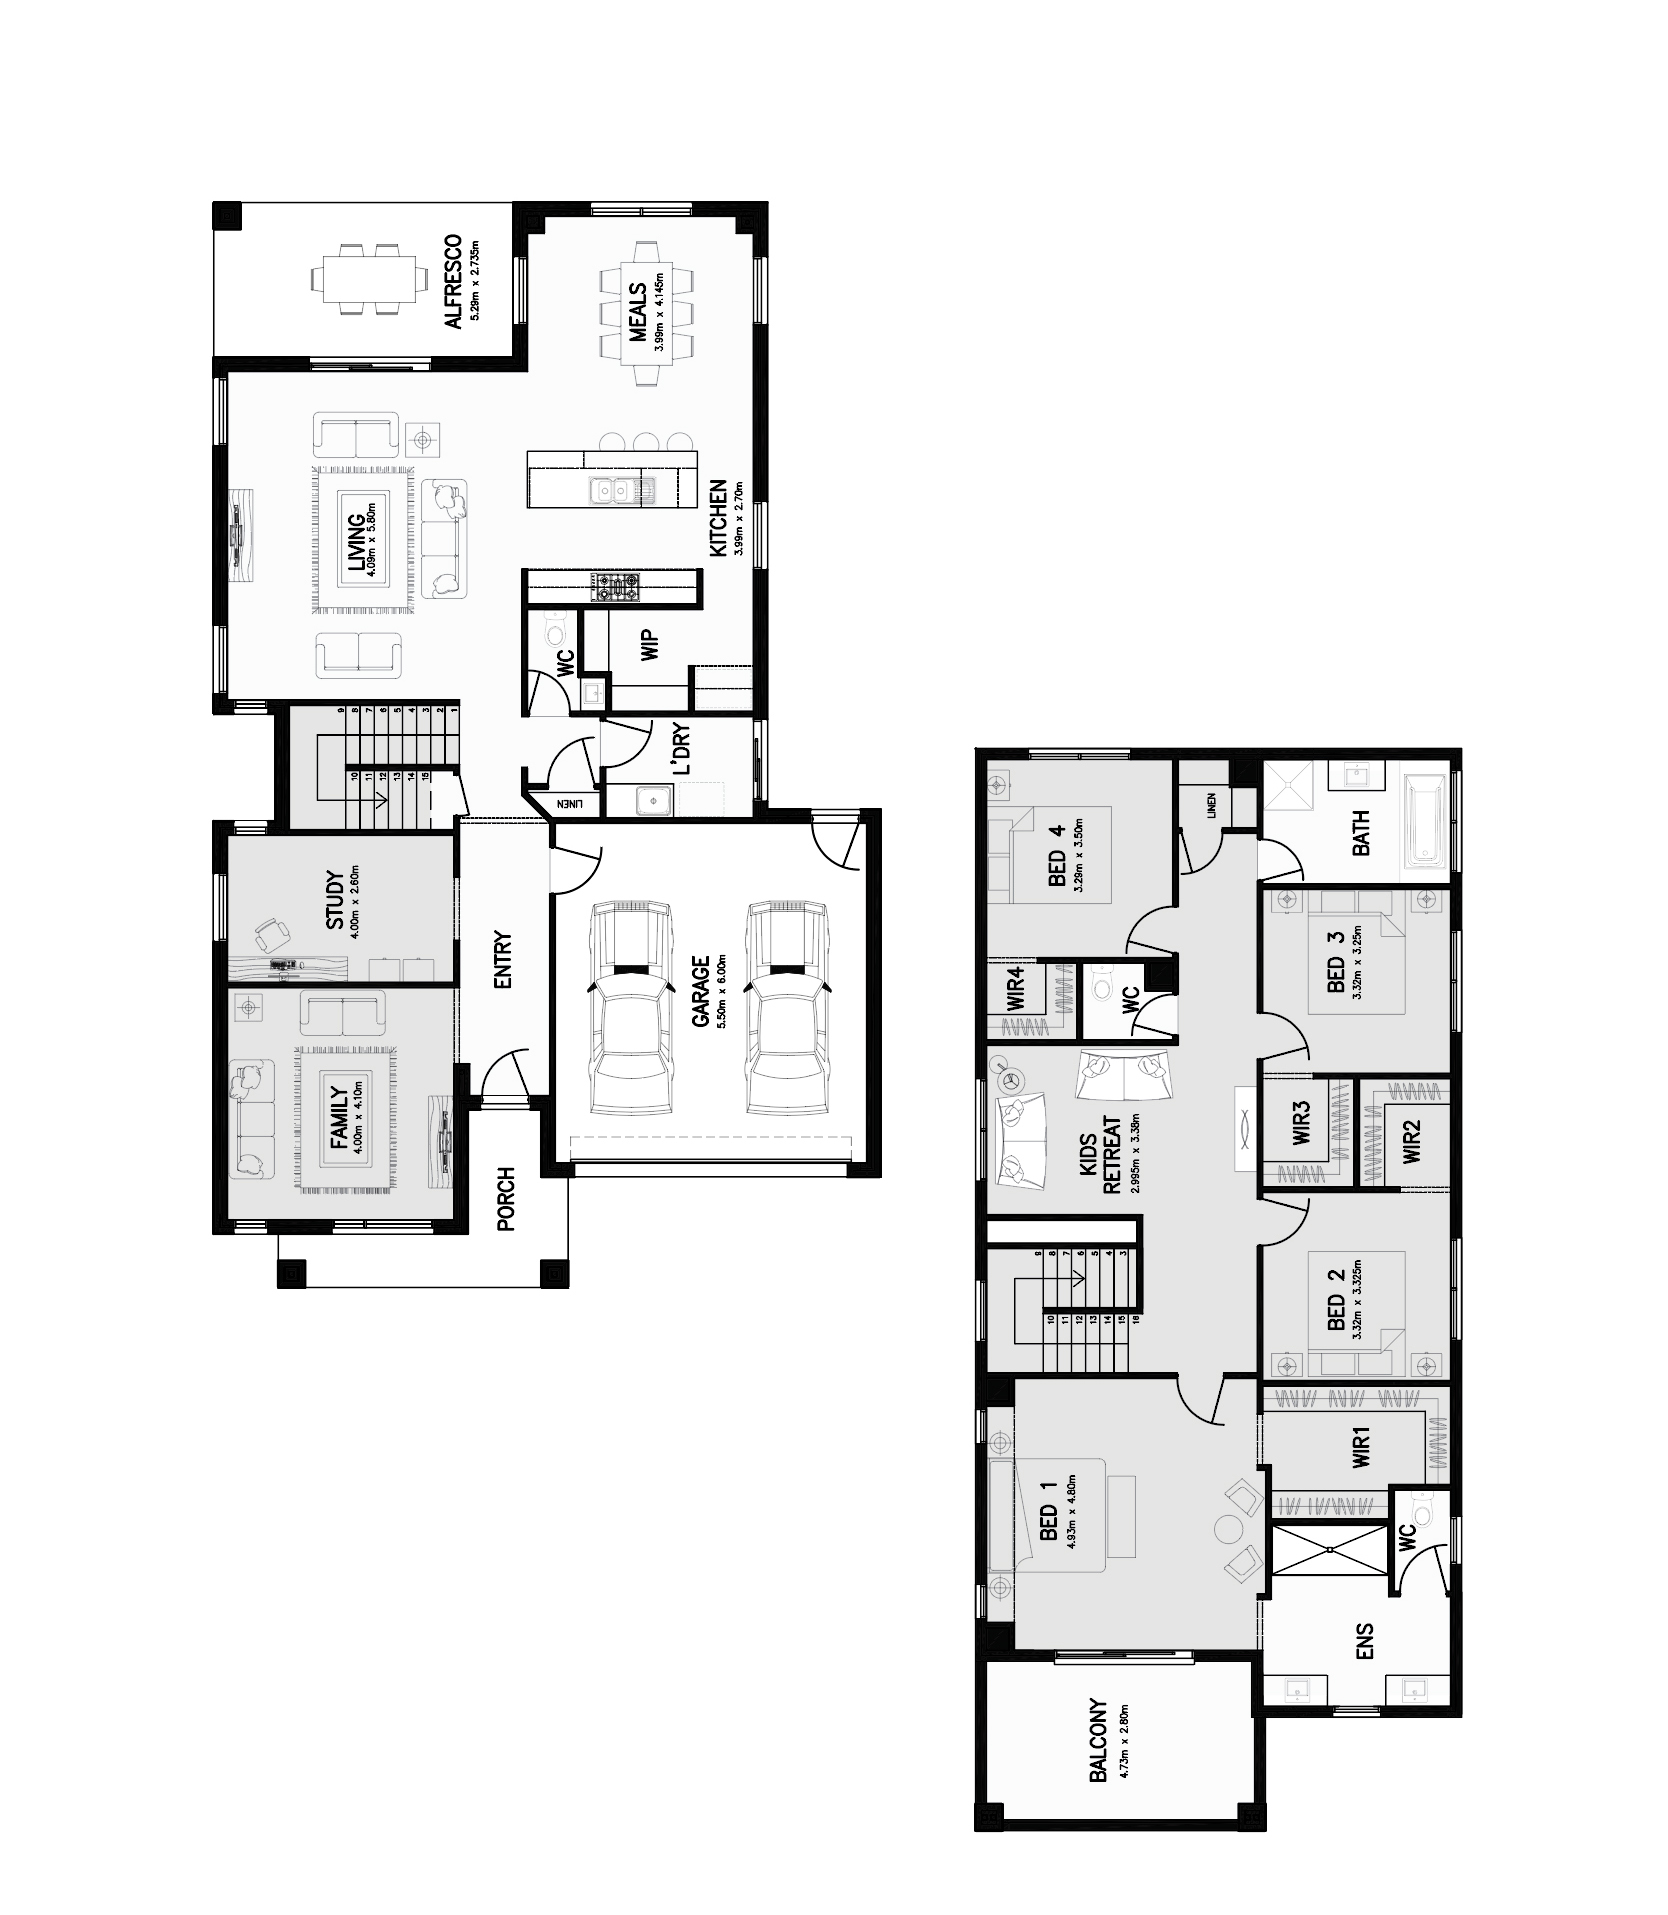 Savana 37 Floorplan